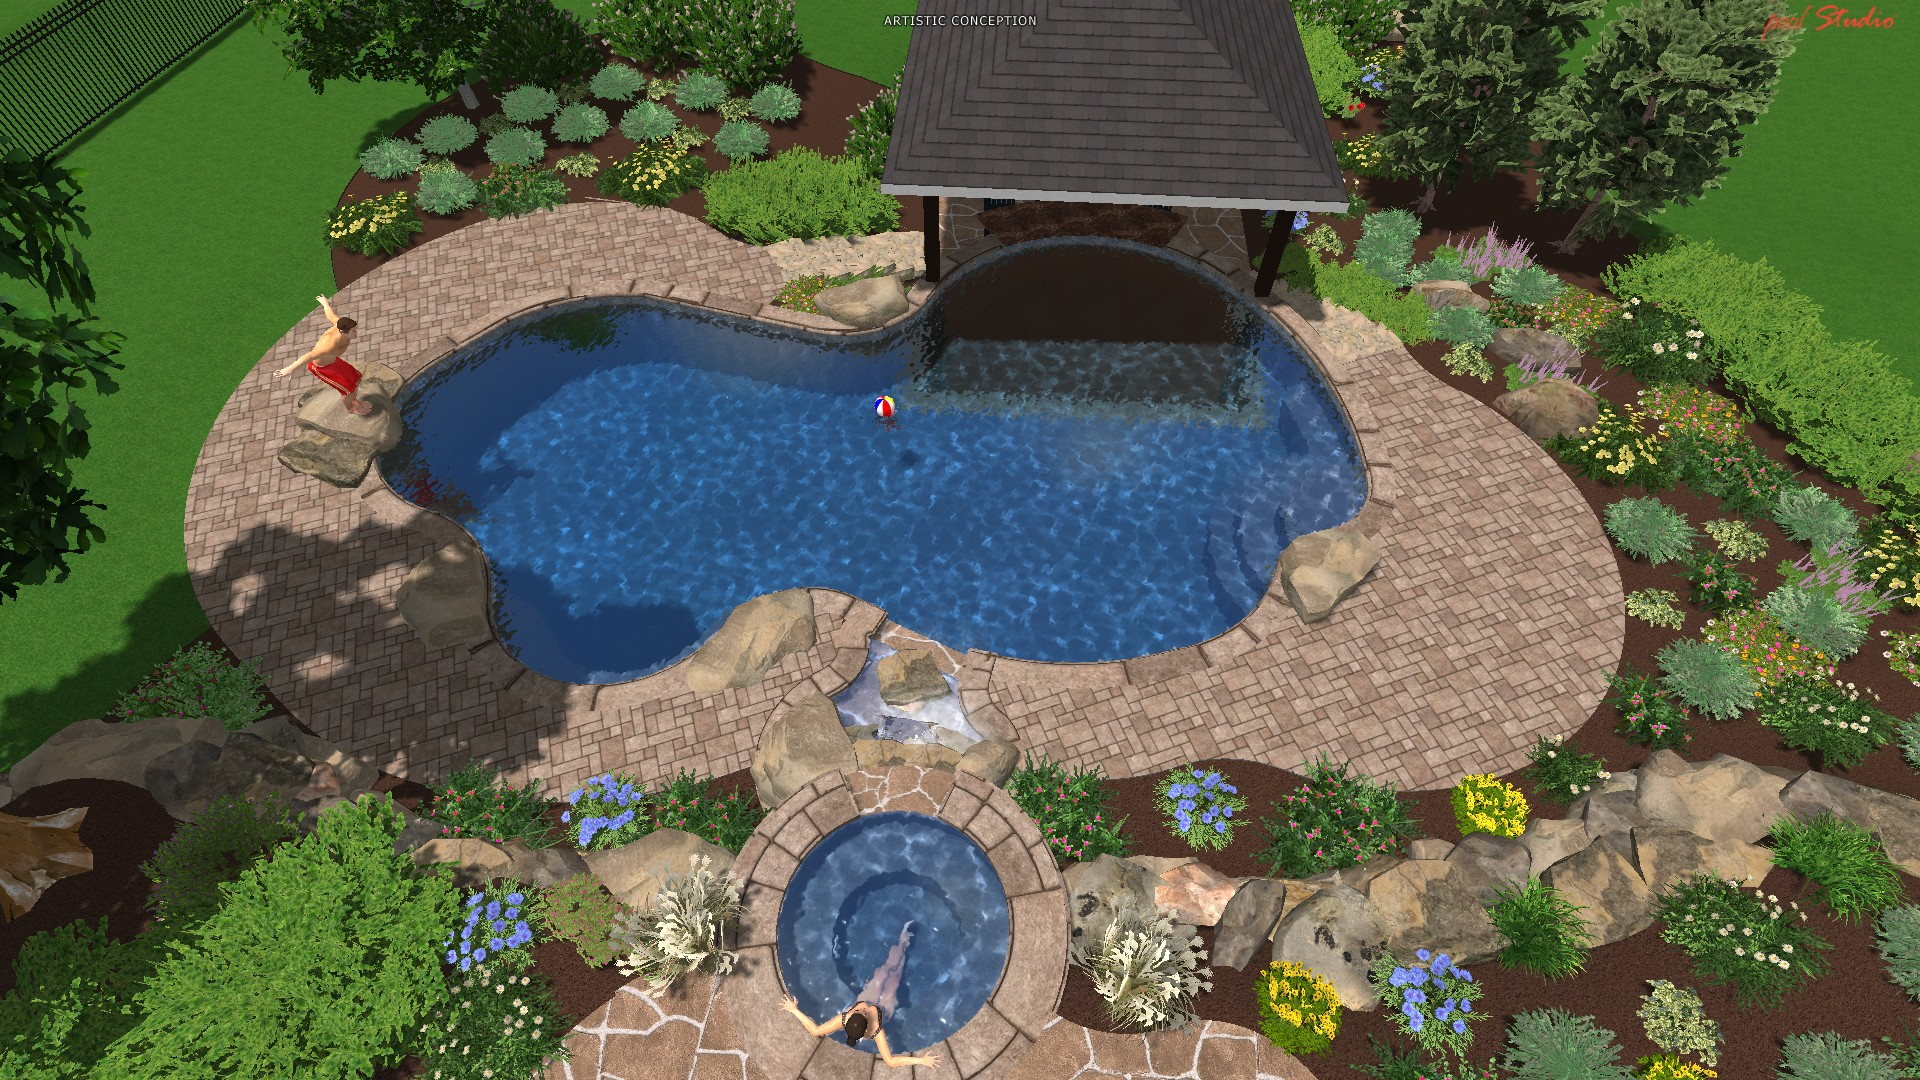 Landscaping Ideas For Inground Swimming Pools natural design of the inground landscaping ideas that used wooden deck decorating ideas that can add the beauty inside the inground landscaping ideas it In Ground Pool Design Ideas Small Pools For Small Yards Swiming Pool Design Home Design Ideas